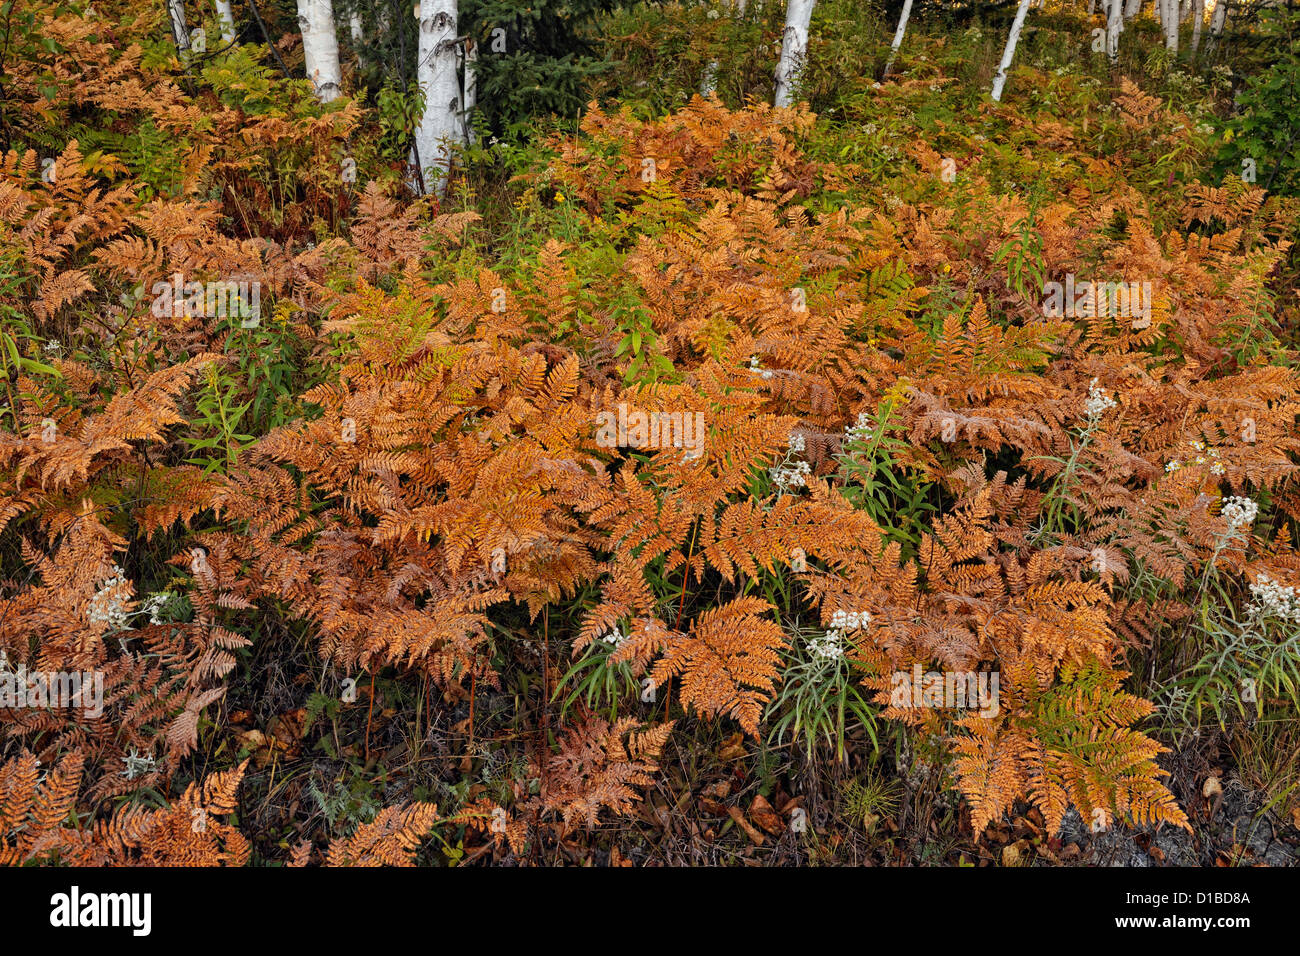 Bracken ferns and wildflowers in the understory of a birch woodlot, Greater Sudbury, Ontario, Canada - Stock Image